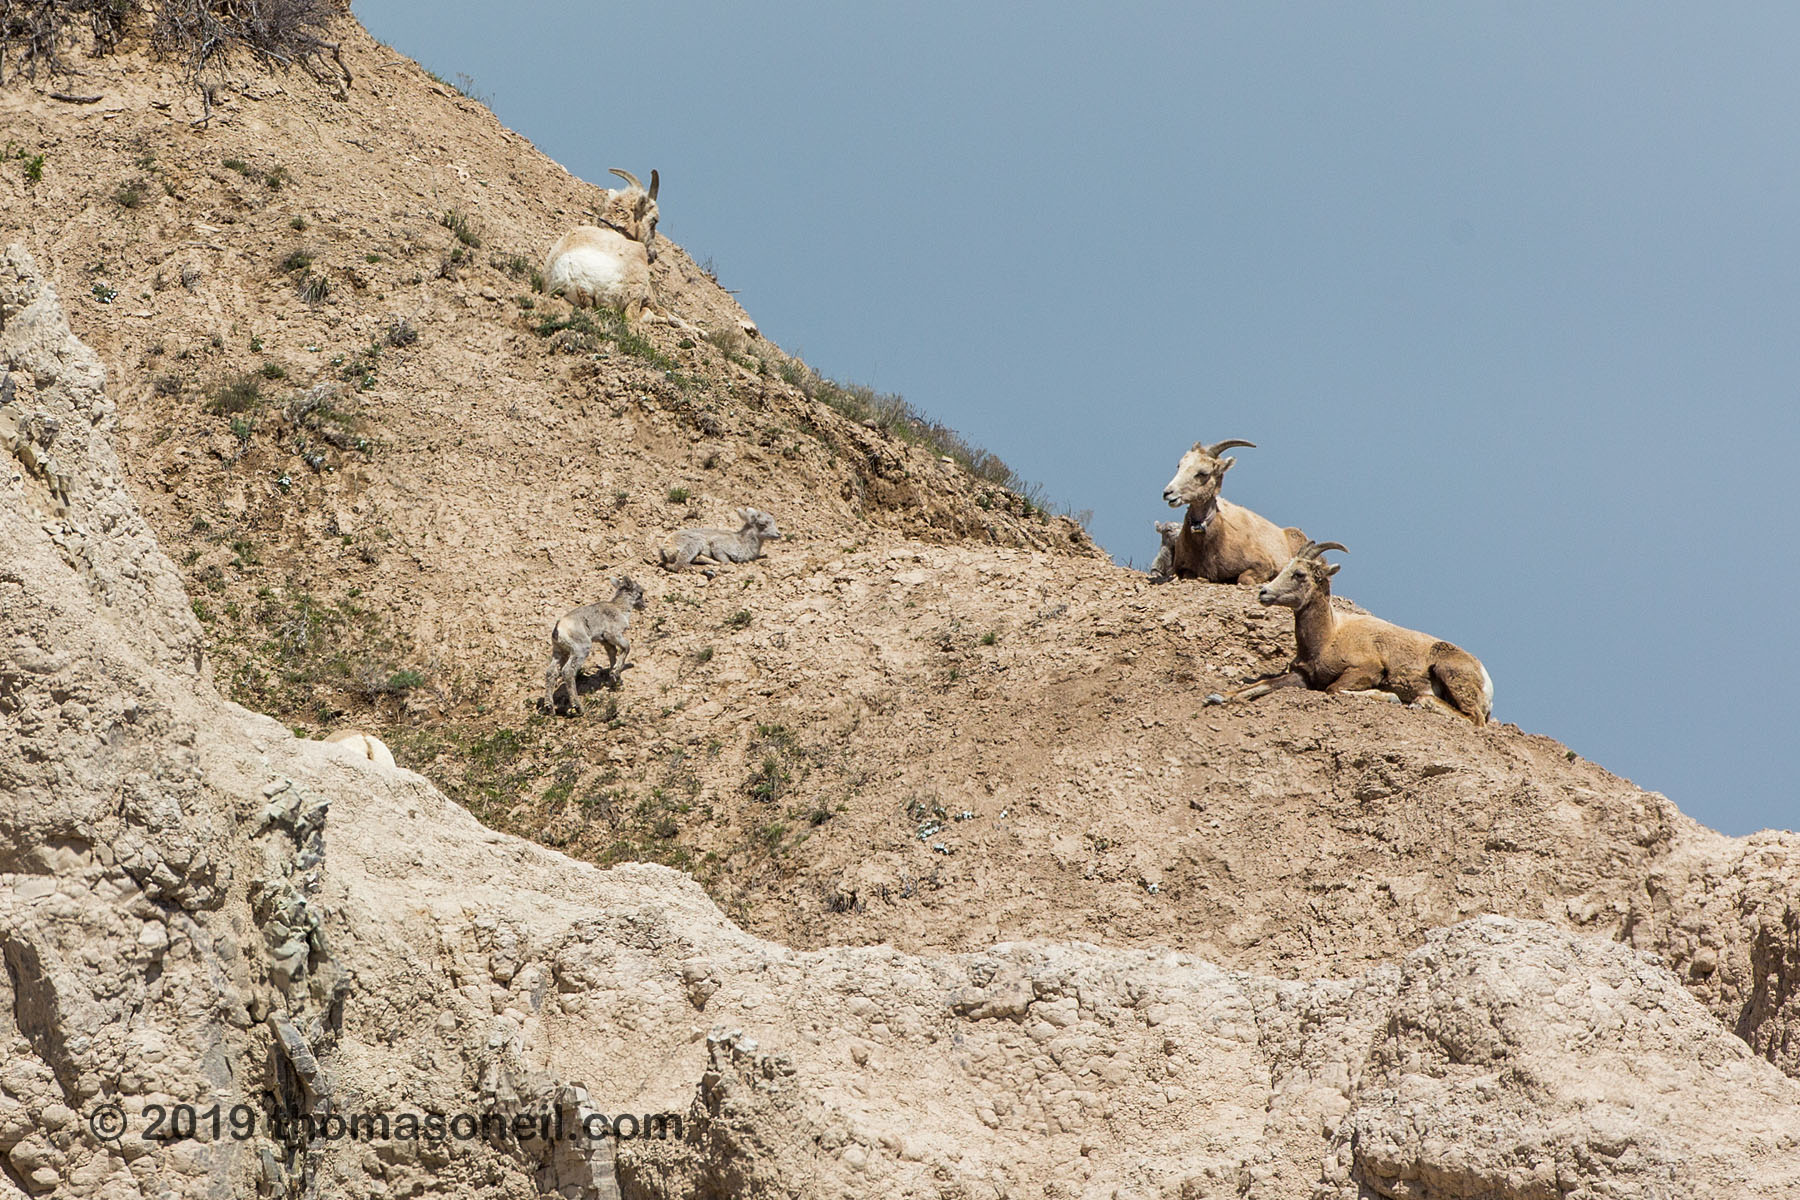 Bighorns on the peak above Ancient Hunters Overlook, Badlands National Park, May 2019.  There are two lambs in the center of the image and another partially obscured by his mother at upper right.  Click for next photo.